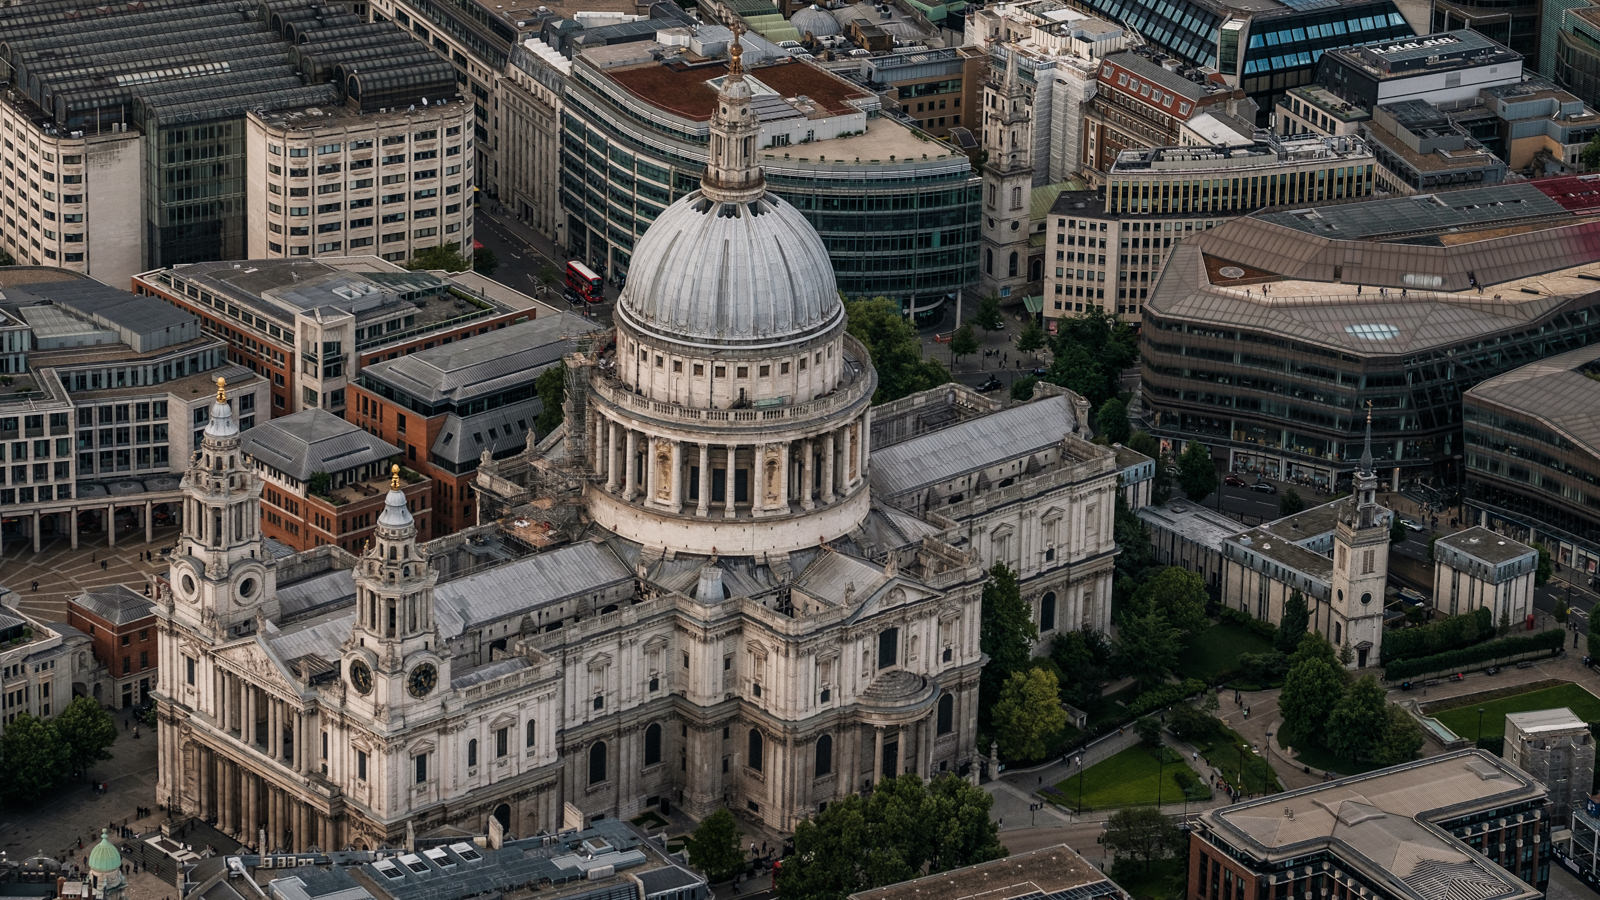 St Paul's Cathedral - with 50-140mm f2.8 @64mm, f4.5, iso200, 1/1000s